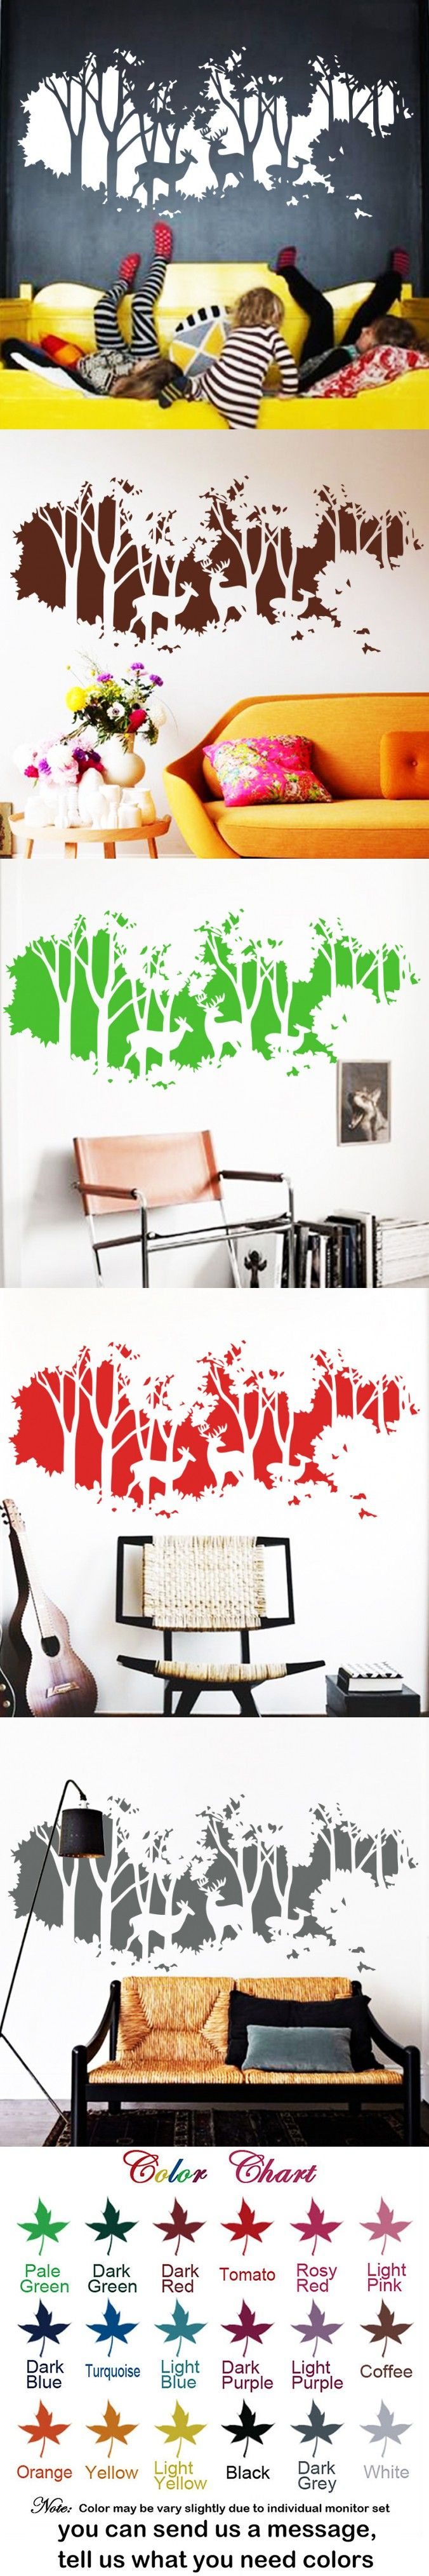 best 25 large wall stickers ideas on pinterest large wall 2016 deers in forest wall sticker diy vinyl large wall stickers home decor wall art decals home decoration for bedrooms